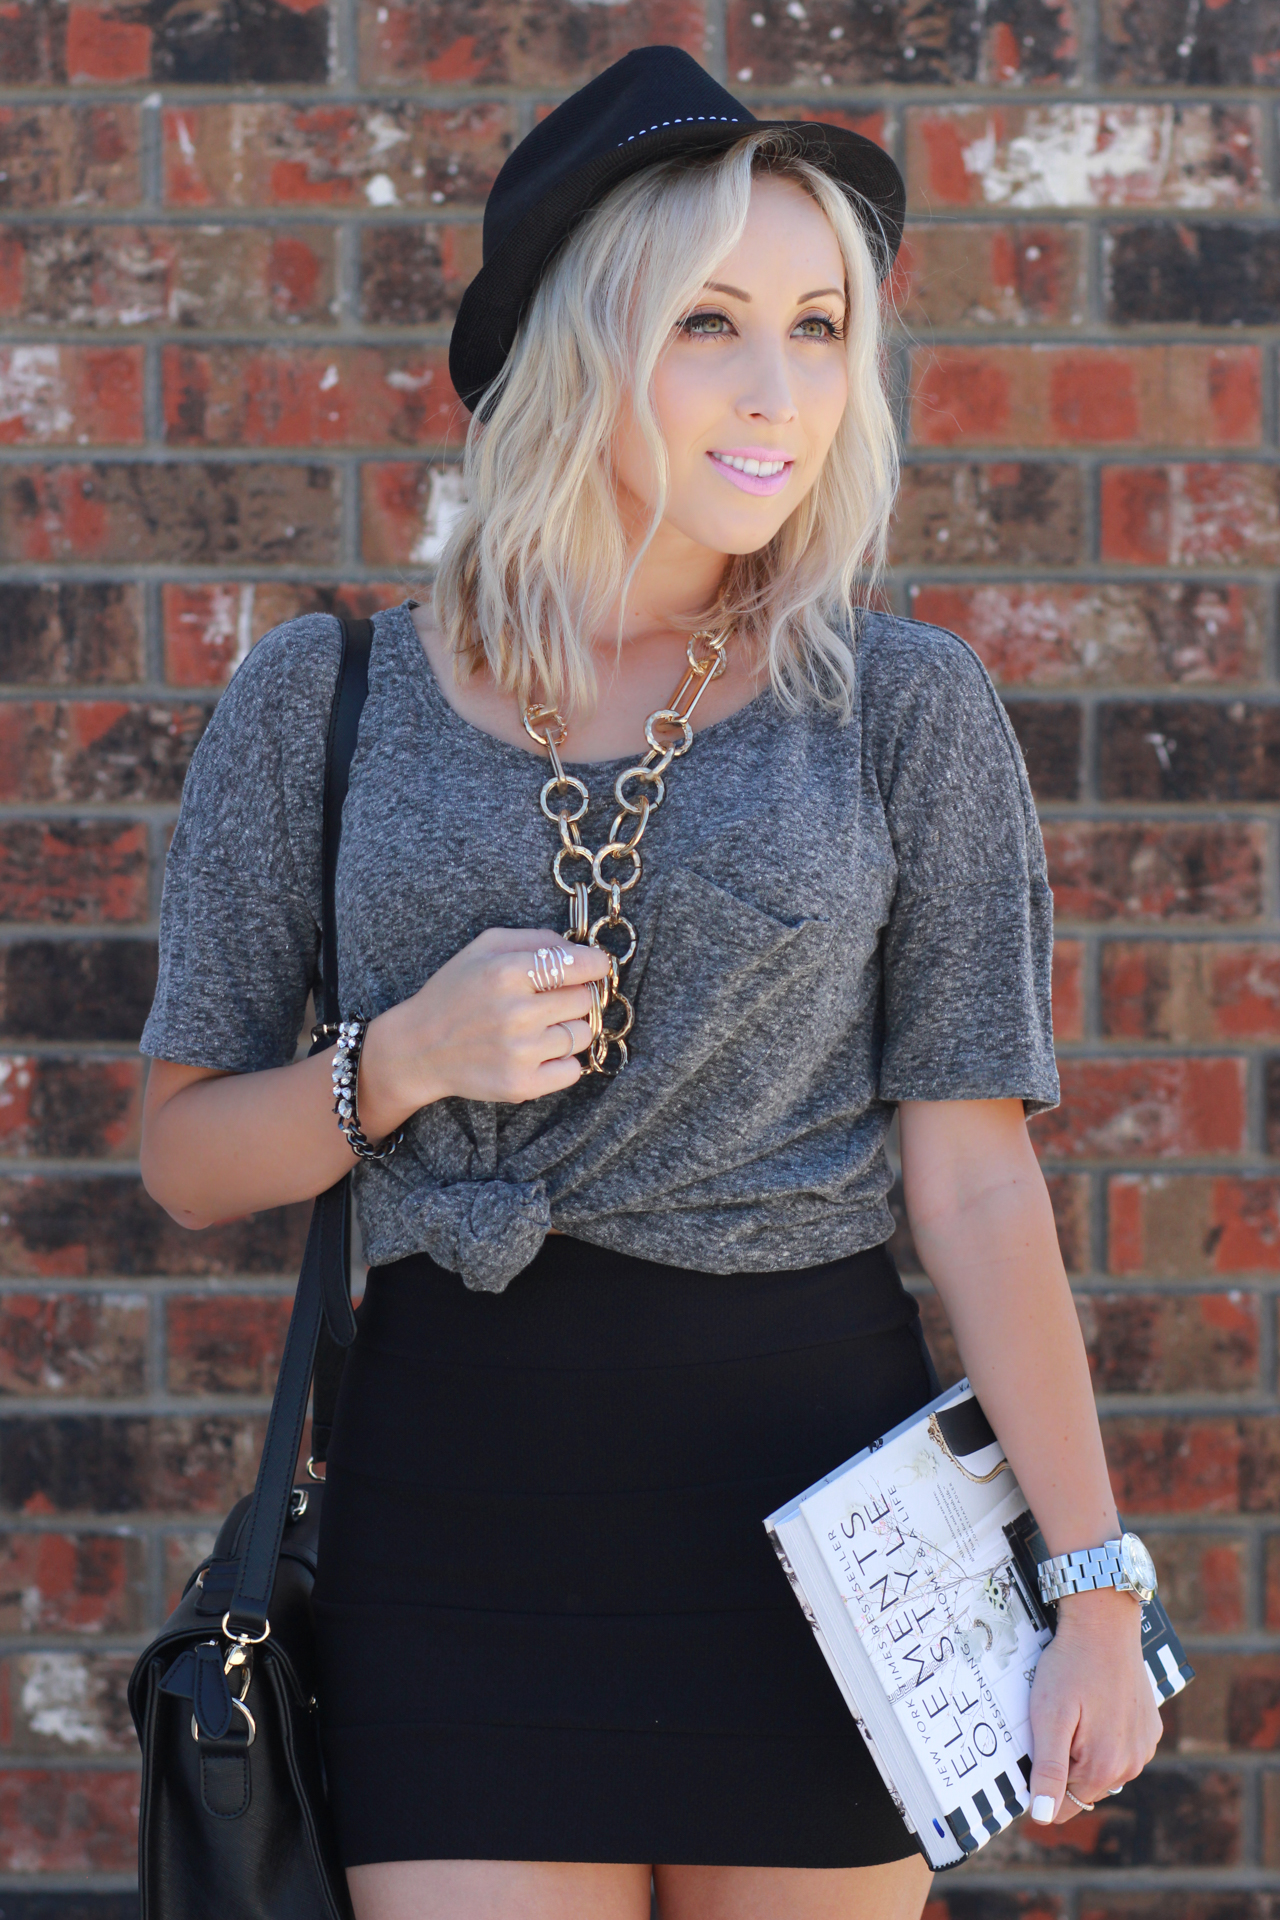 High Waisted Skirt, Tied Up Oversized Shirt | StyledByBlondie.com